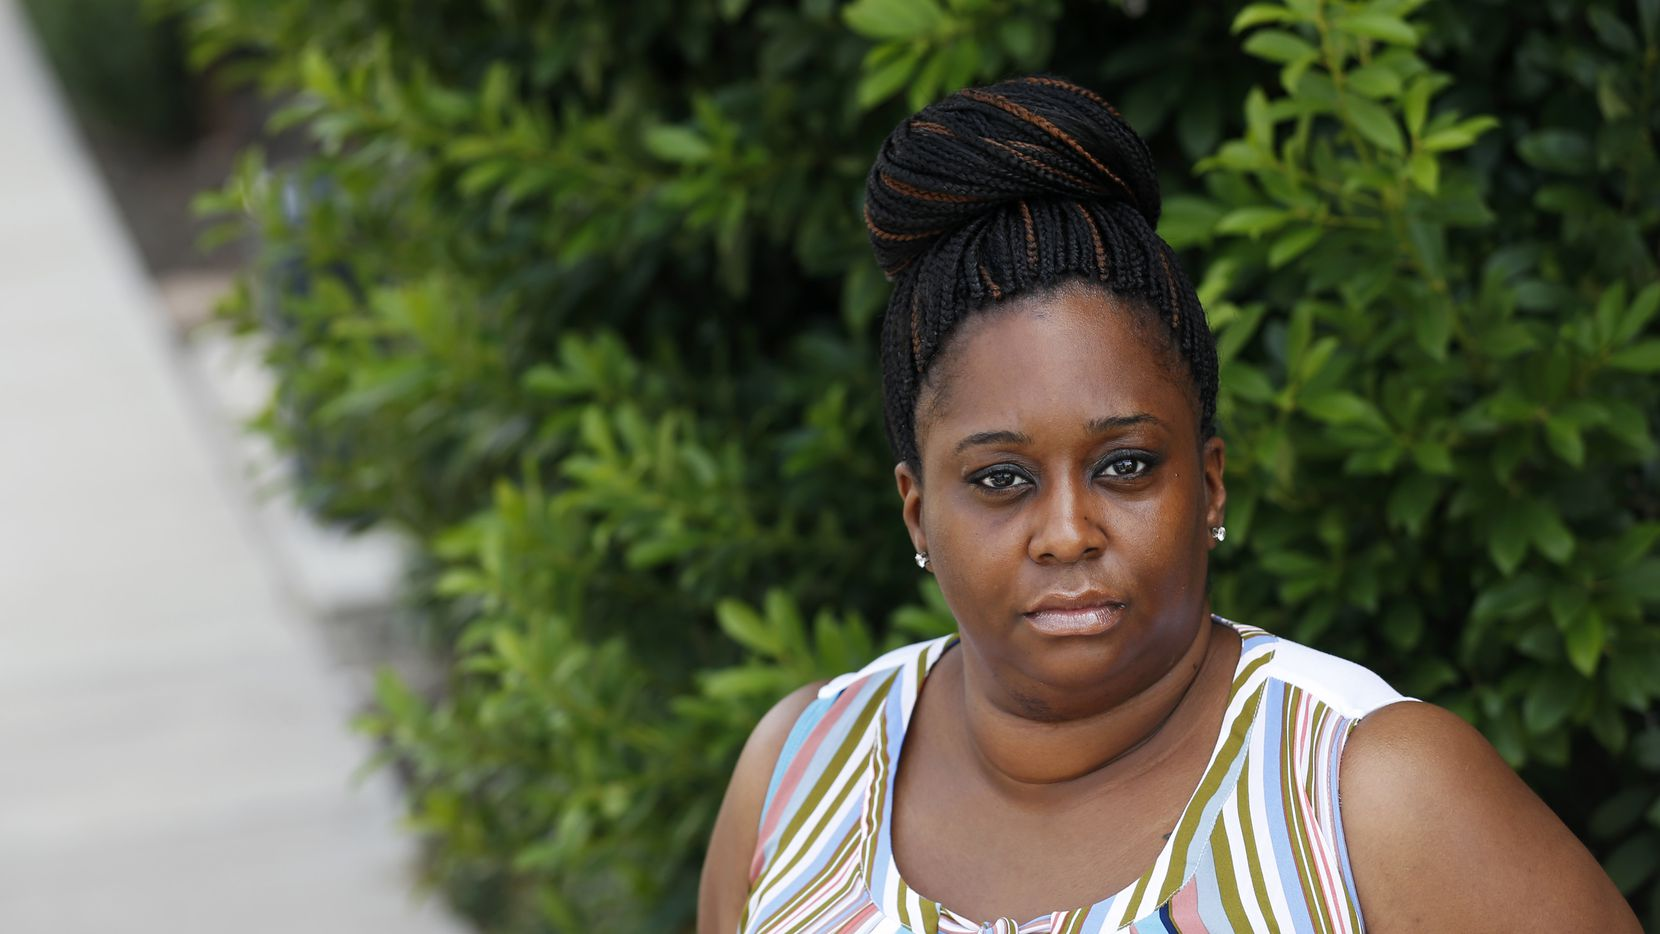 Sherry Tutt poses for a portrait at her apartment complex on Wednesday, July 1, 2020. Sherry's mother, Doris LaVon Sims, and her sister, LaKecial Tutt, both died of the coronavirus on June 9.